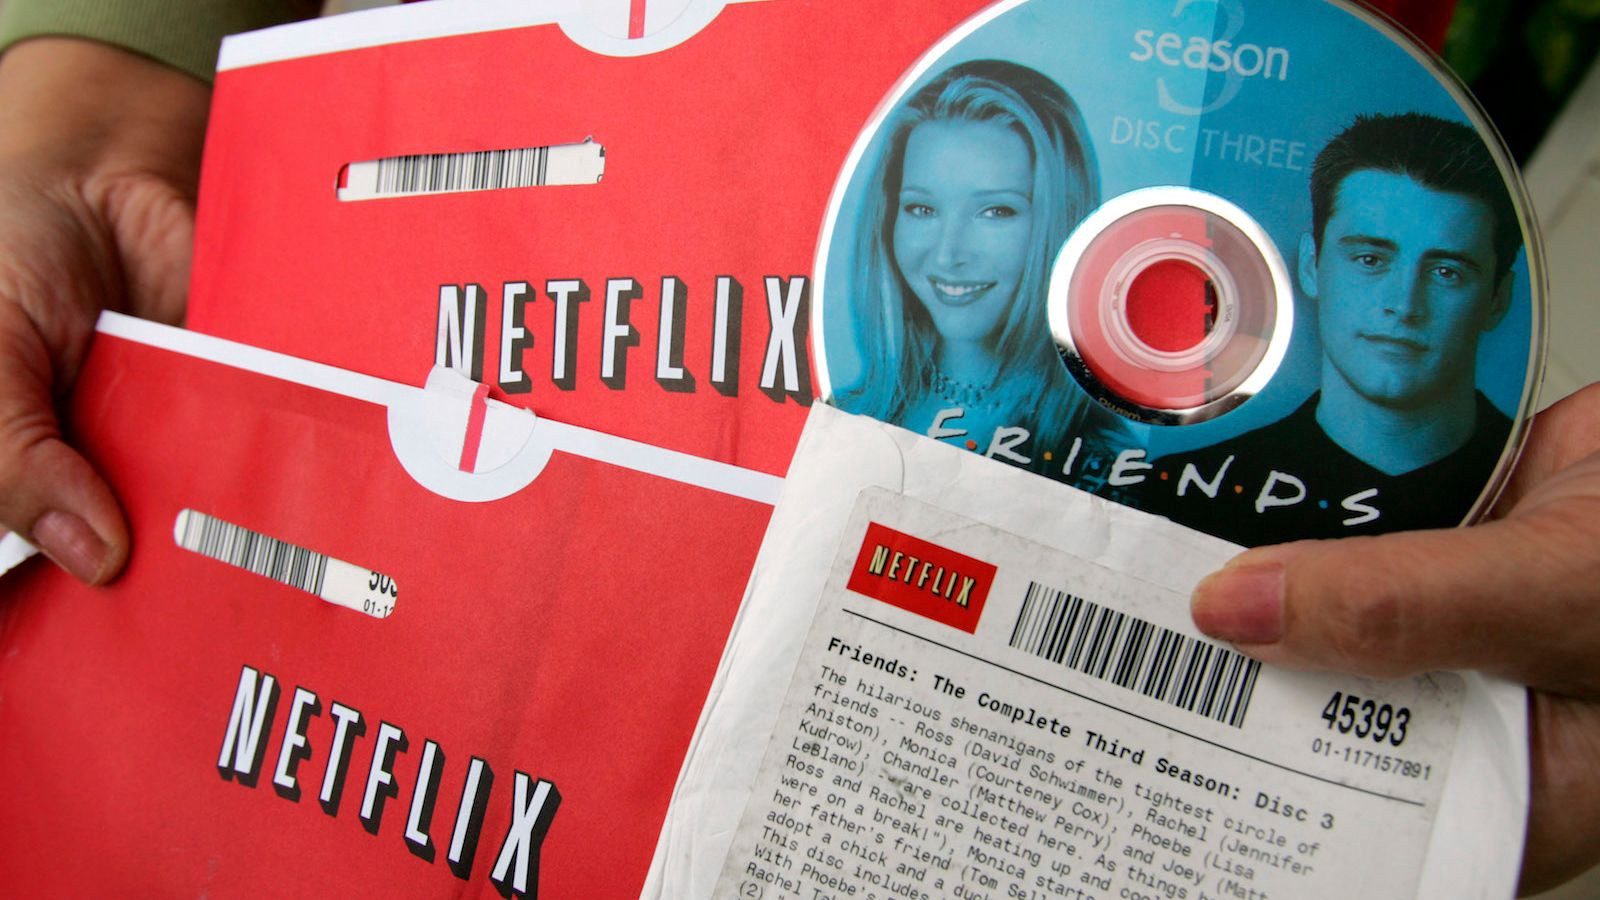 Netflix: From a small startup to a global entertainment superpower   by Marianthi Lazou   Entrepreneurial Journalism   Medium